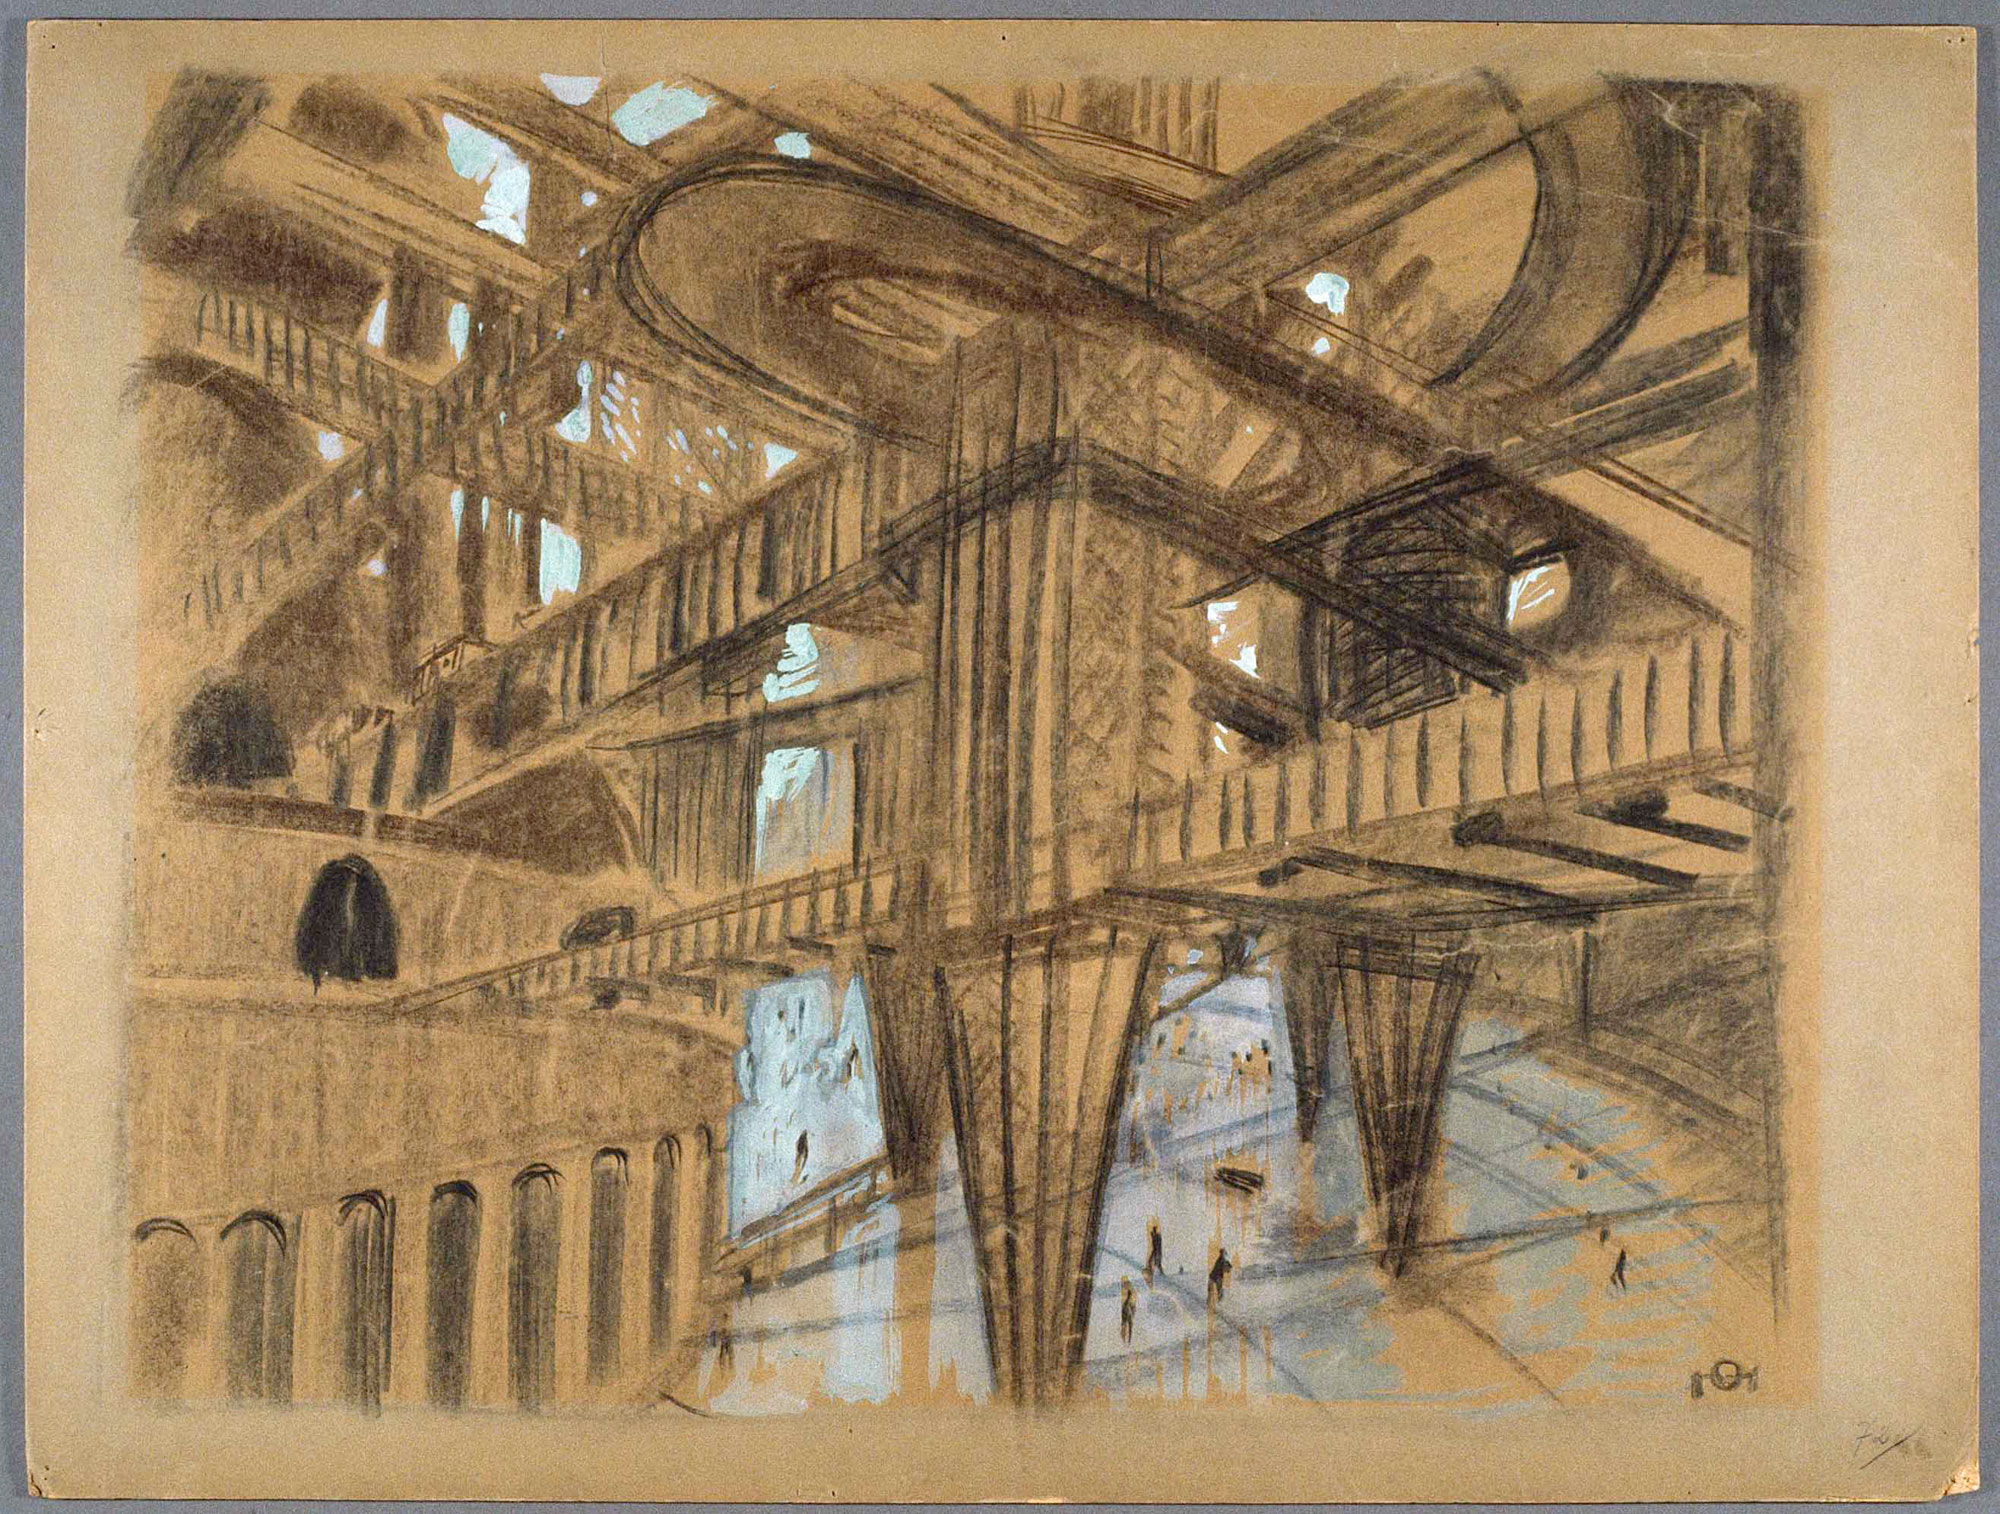 2000x1514 Otto Hunte Set Design Drawing For Metropolis Art Blart